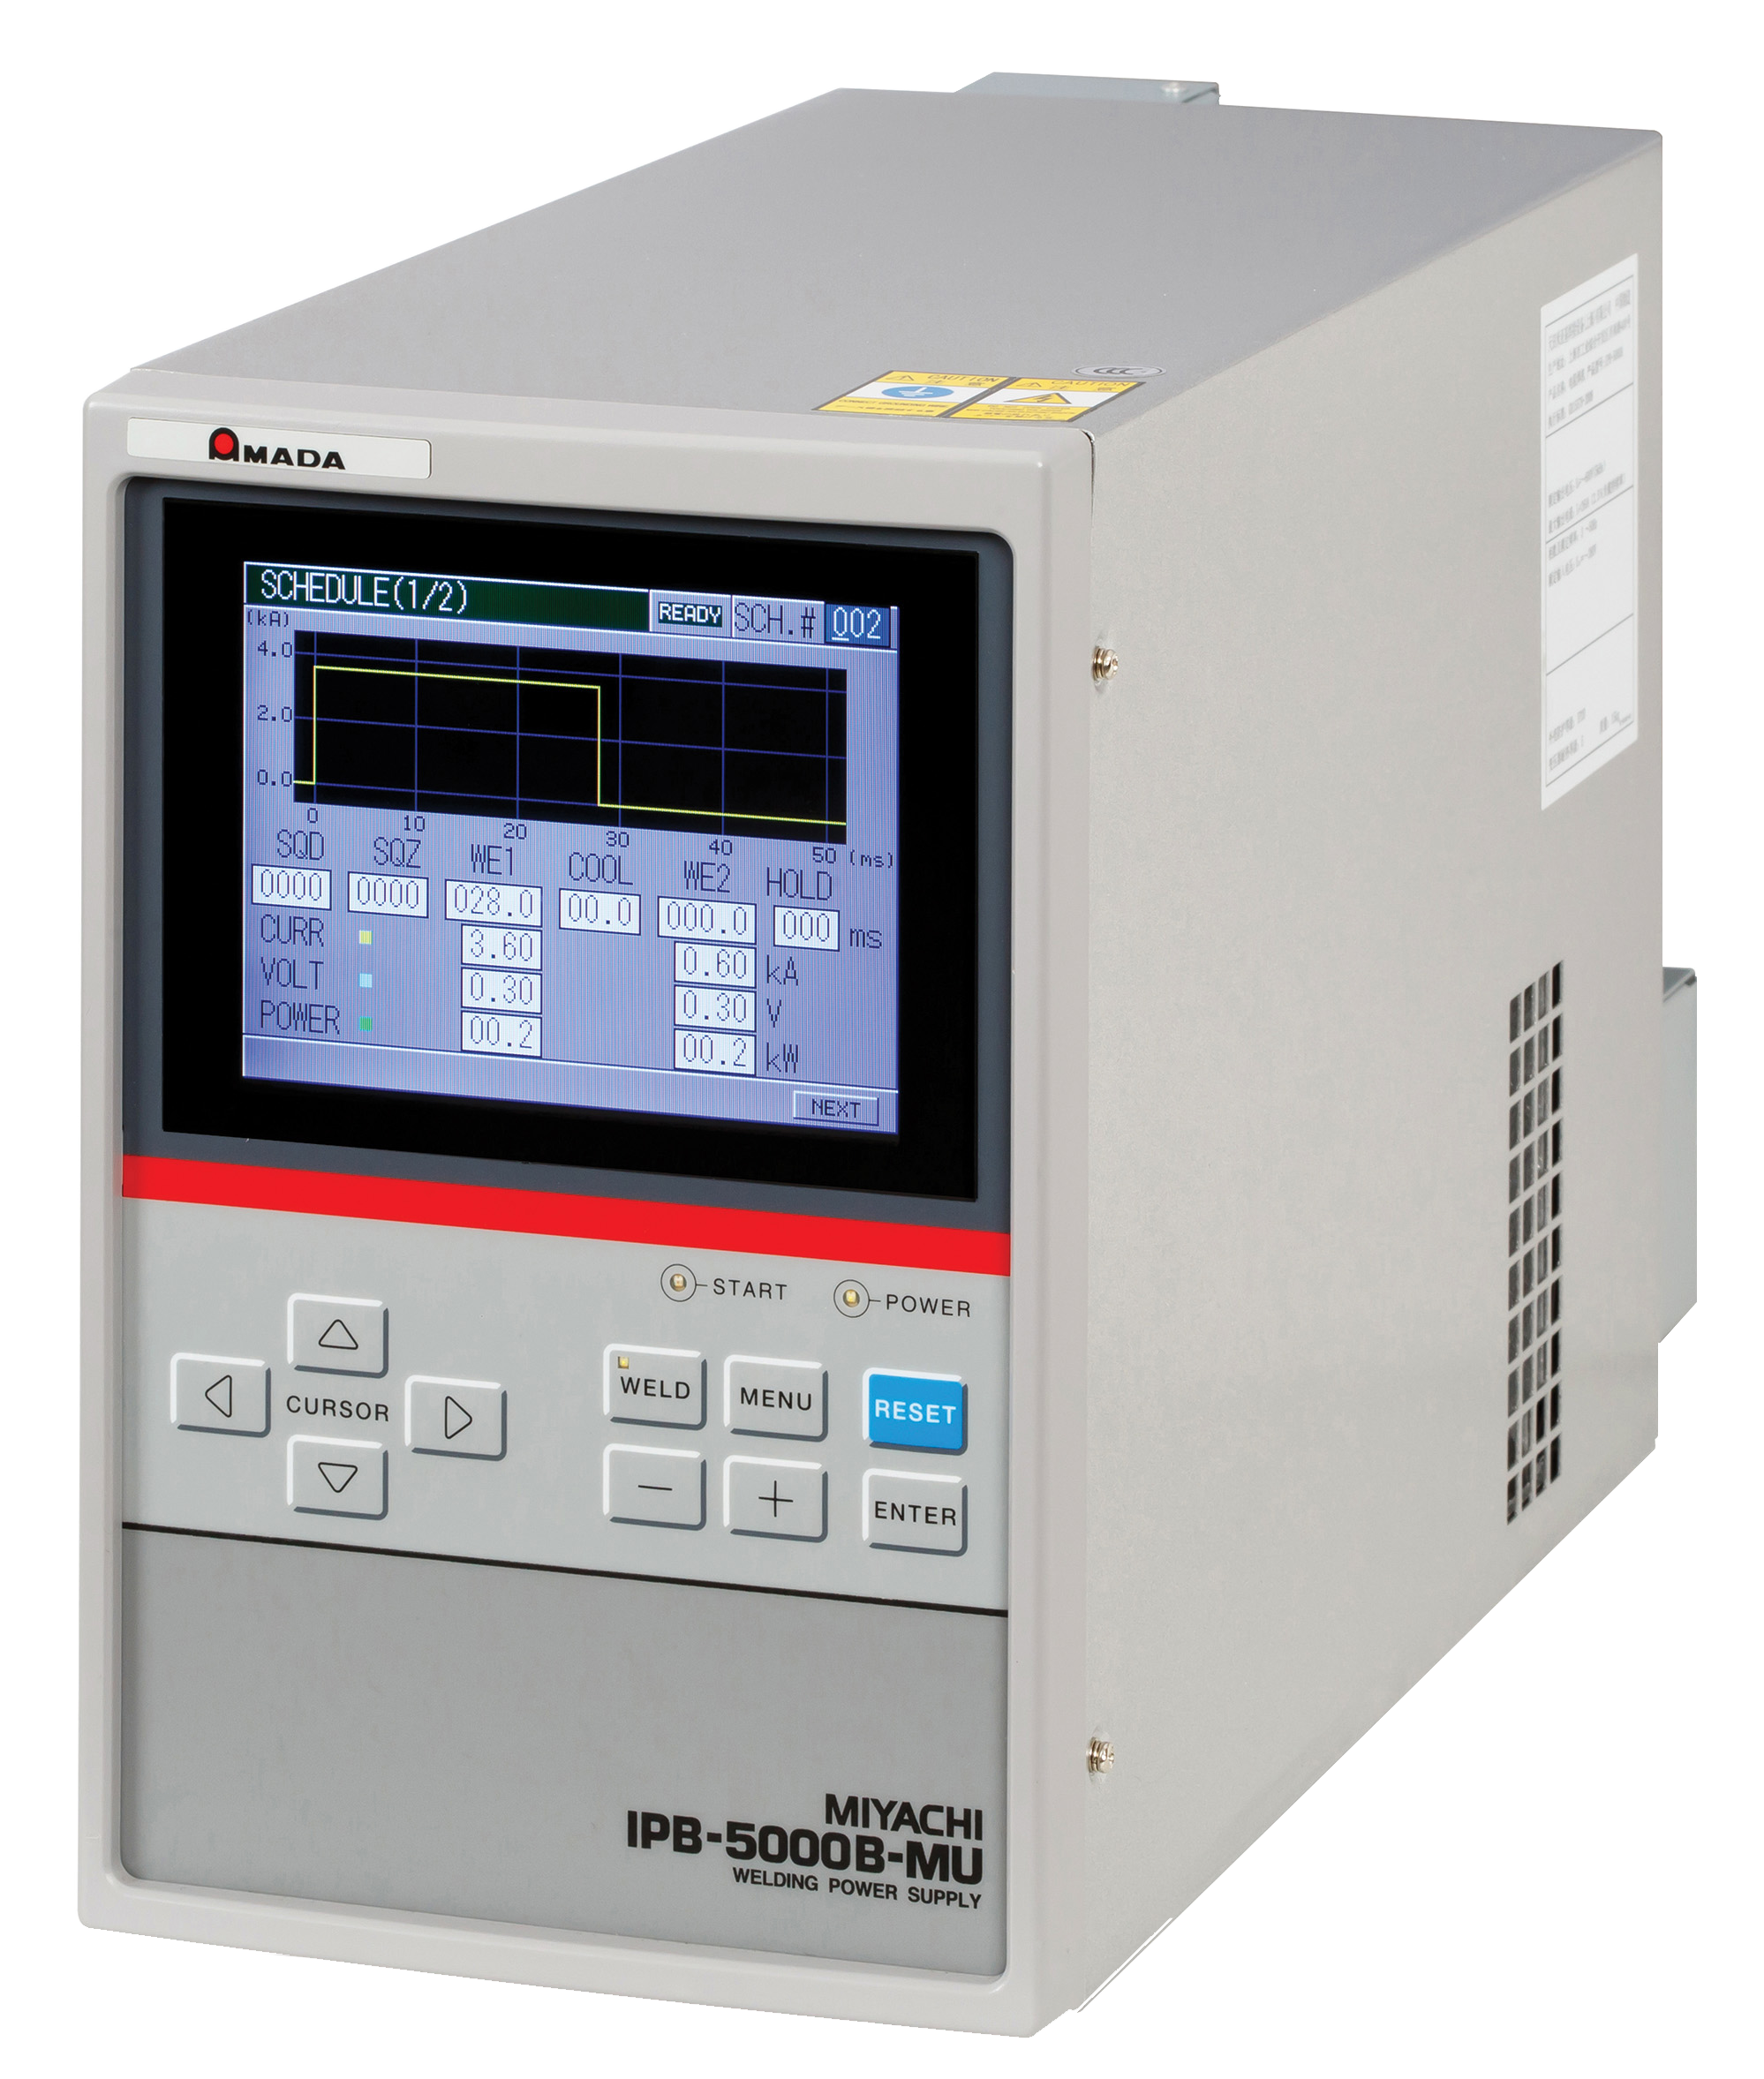 IPB-5000B-MU High Frequency Inverter Spot Welder